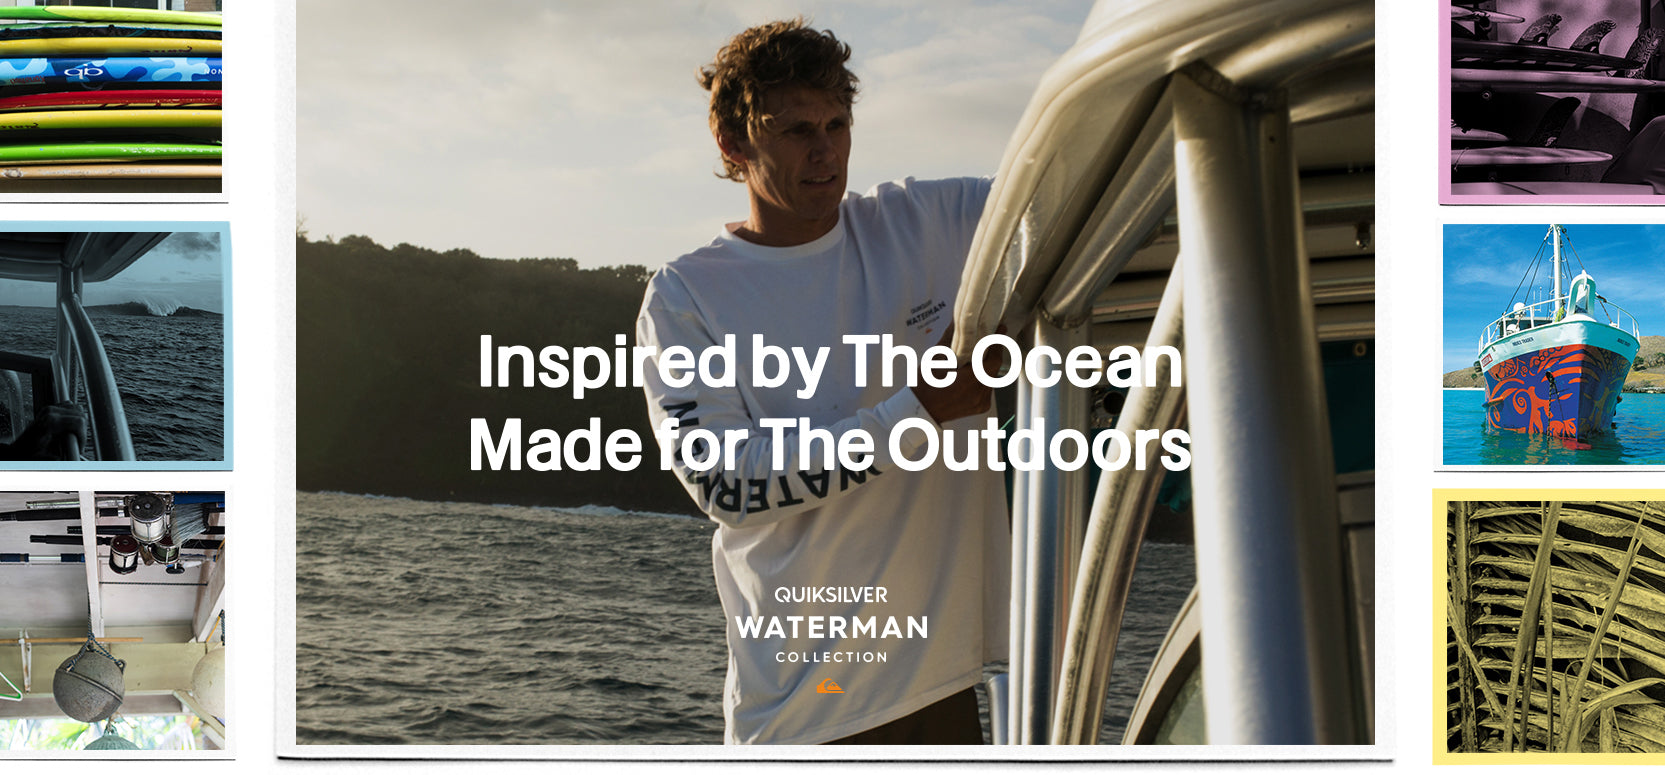 Quiksilver 2018 | Made for The Outdoor Adventure Waterman Collection